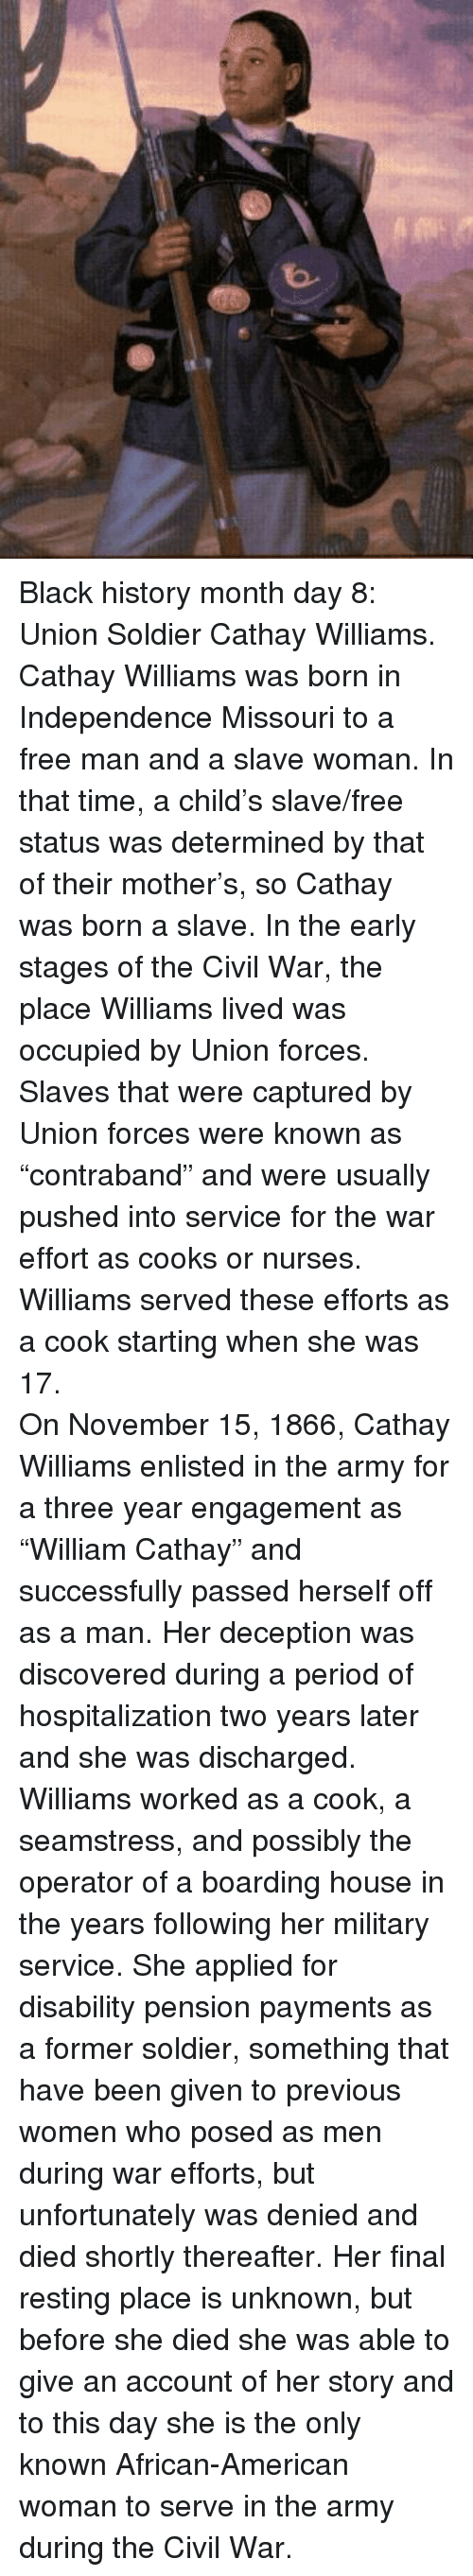 Black History Month, Period, and Army: <p>Black history month day 8: Union Soldier Cathay Williams.</p>  <p>Cathay Williams was born in Independence Missouri to a free man and a slave woman. In that time, a child&rsquo;s slave/free status was determined by that of their mother&rsquo;s, so Cathay was born a slave. In the early stages of the Civil War, the place Williams lived was occupied by Union forces. Slaves that were captured by Union forces were known as &ldquo;contraband&rdquo; and were usually pushed into service for the war effort as cooks or nurses. Williams served these efforts as a cook starting when she was 17.</p>  <p>On November 15, 1866, Cathay Williams enlisted in the army for a three year engagement as &ldquo;William Cathay&rdquo; and successfully passed herself off as a man. Her deception was discovered during a period of hospitalization two years later and she was discharged.</p>  <p>Williams worked as a cook, a seamstress, and possibly the operator of a boarding house in the years following her military service. She applied for disability pension payments as a former soldier, something that have been given to previous women who posed as men during war efforts, but unfortunately was denied and died shortly thereafter. Her final resting place is unknown, but before she died she was able to give an account of her story and to this day she is the only known African-American woman to serve in the army during the Civil War.</p>